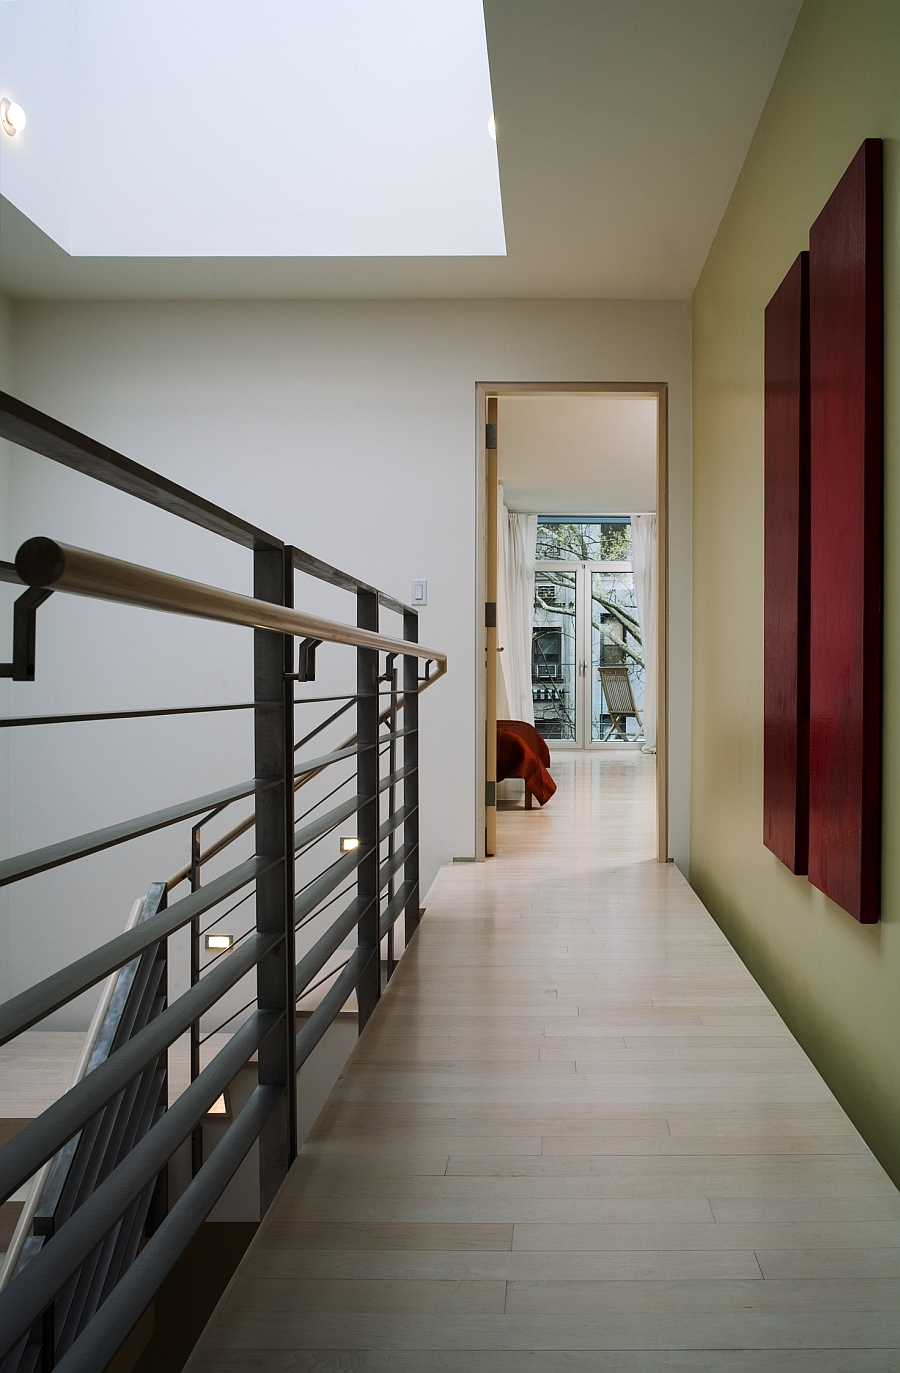 Interior that presents a wonderful balance between steel and wood